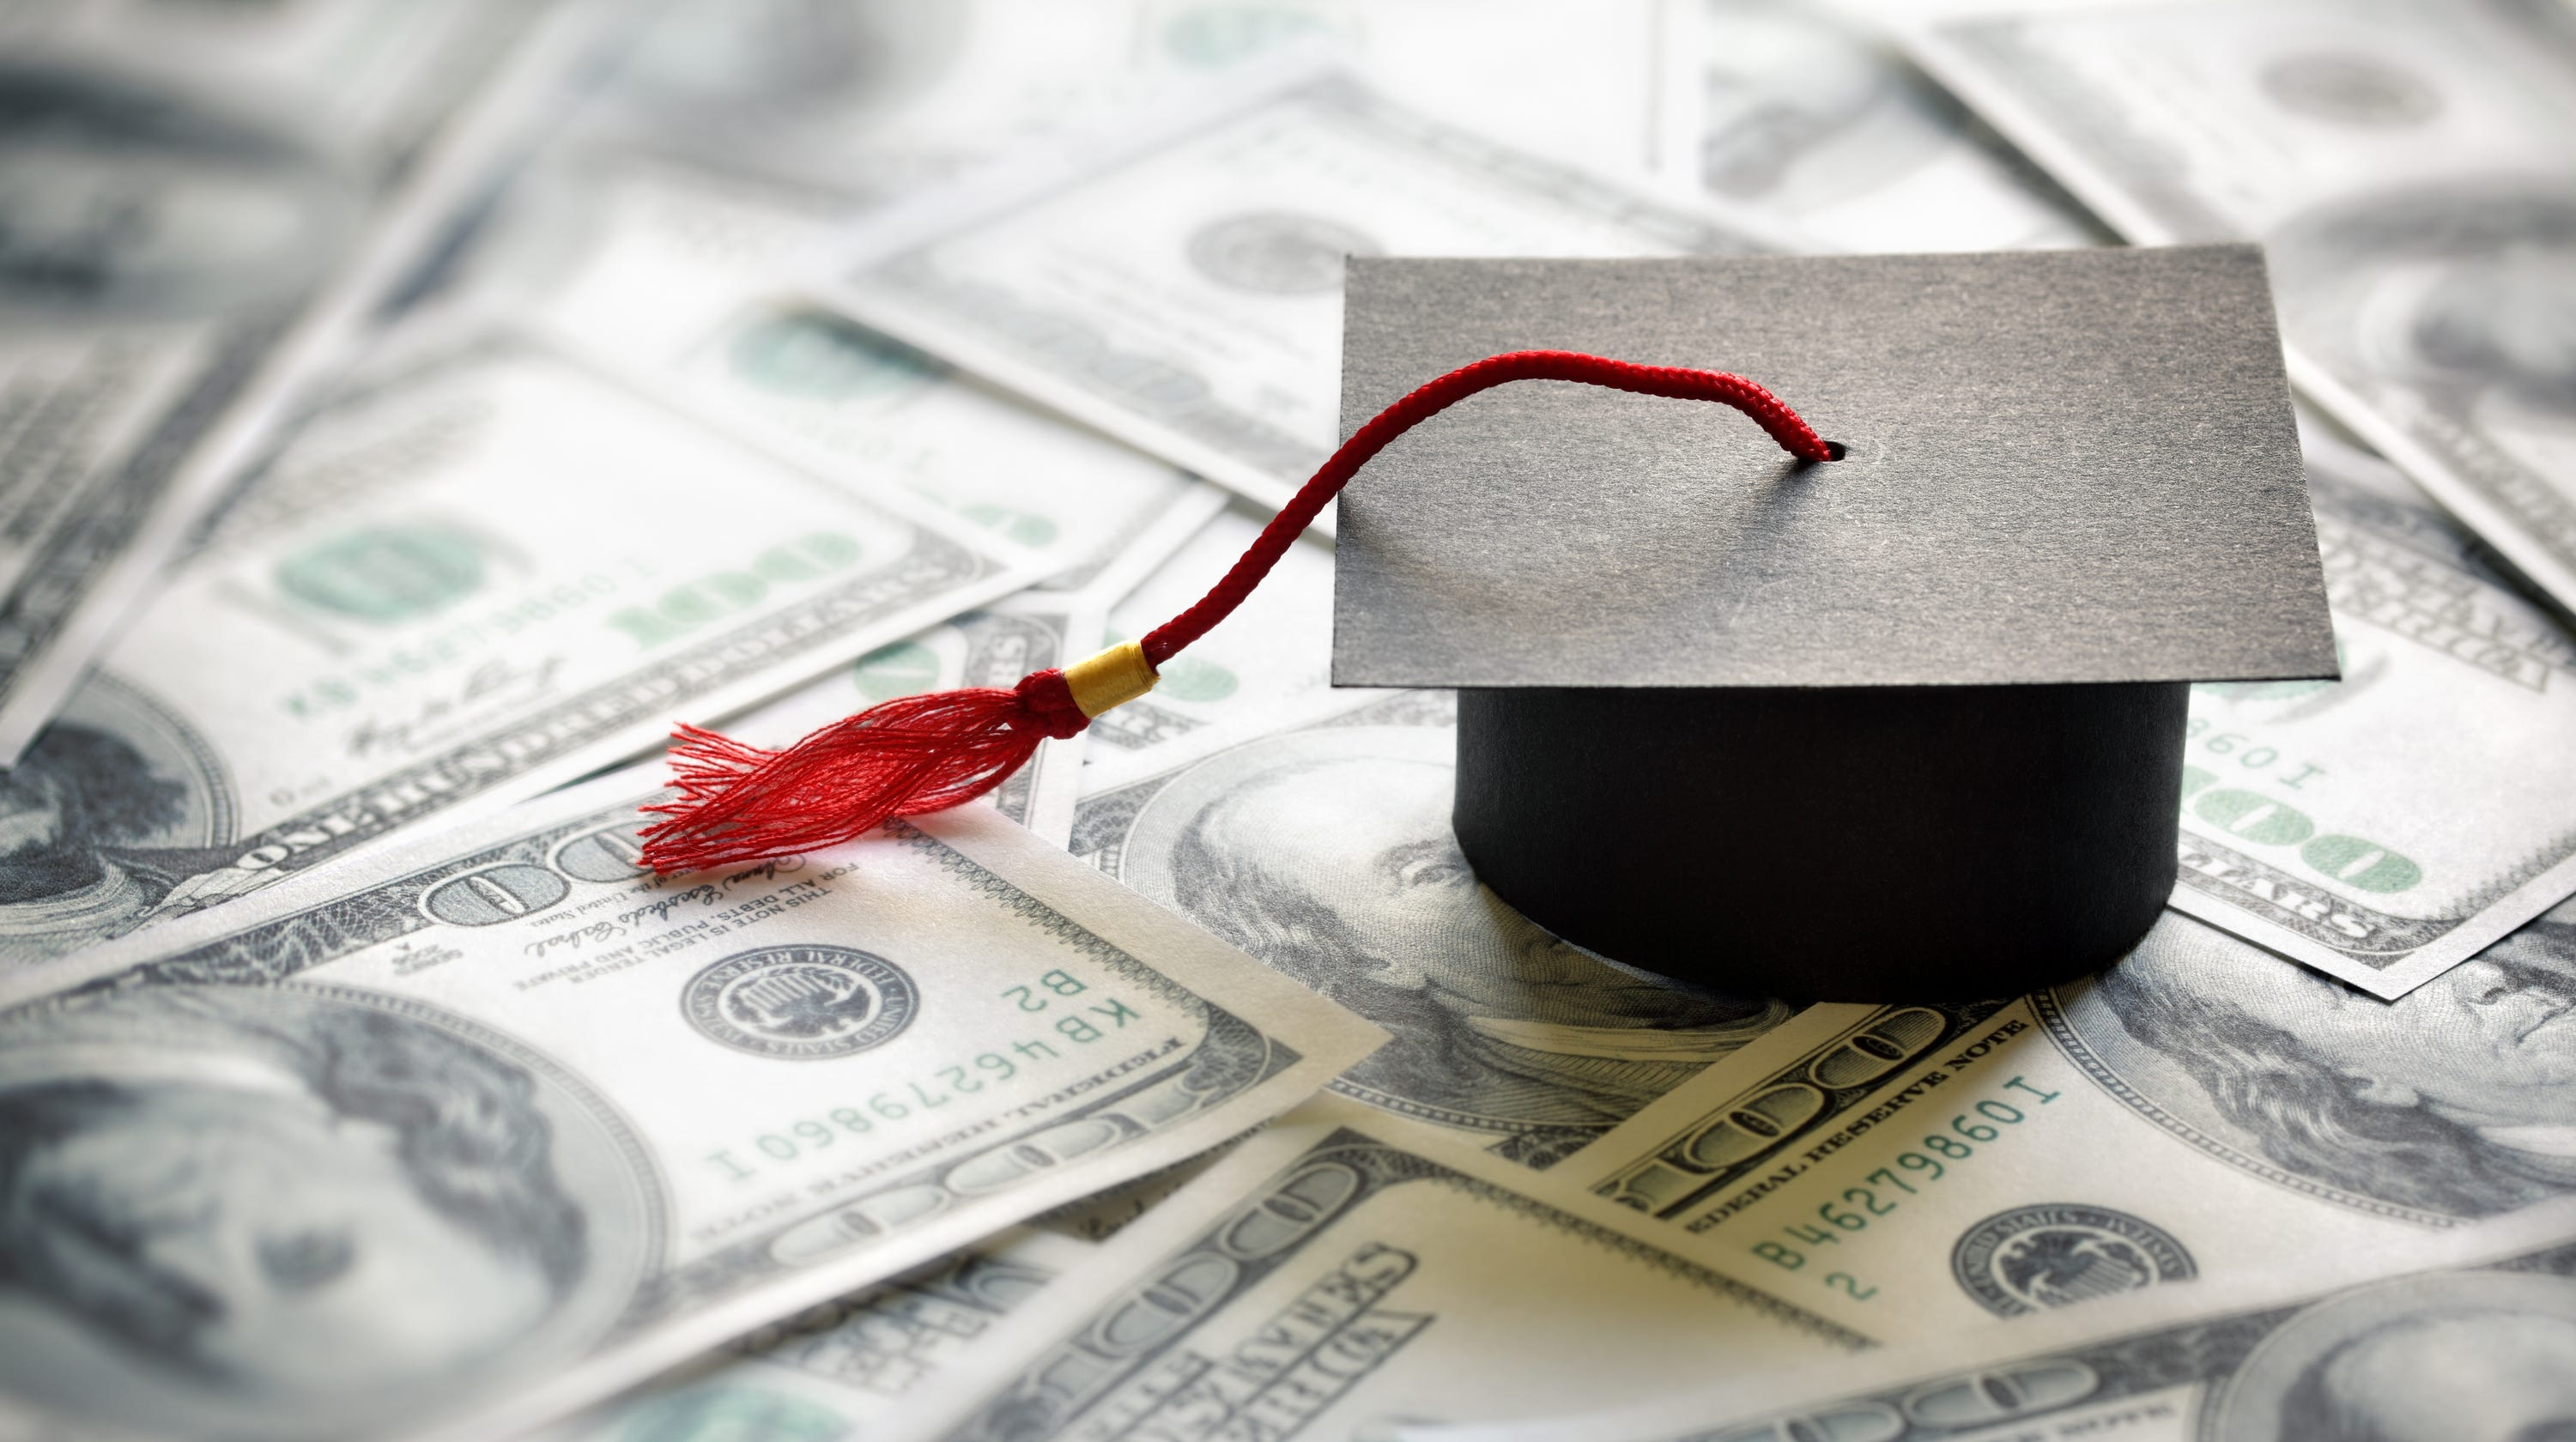 New College Board scholarships have no minimum GPA, SAT